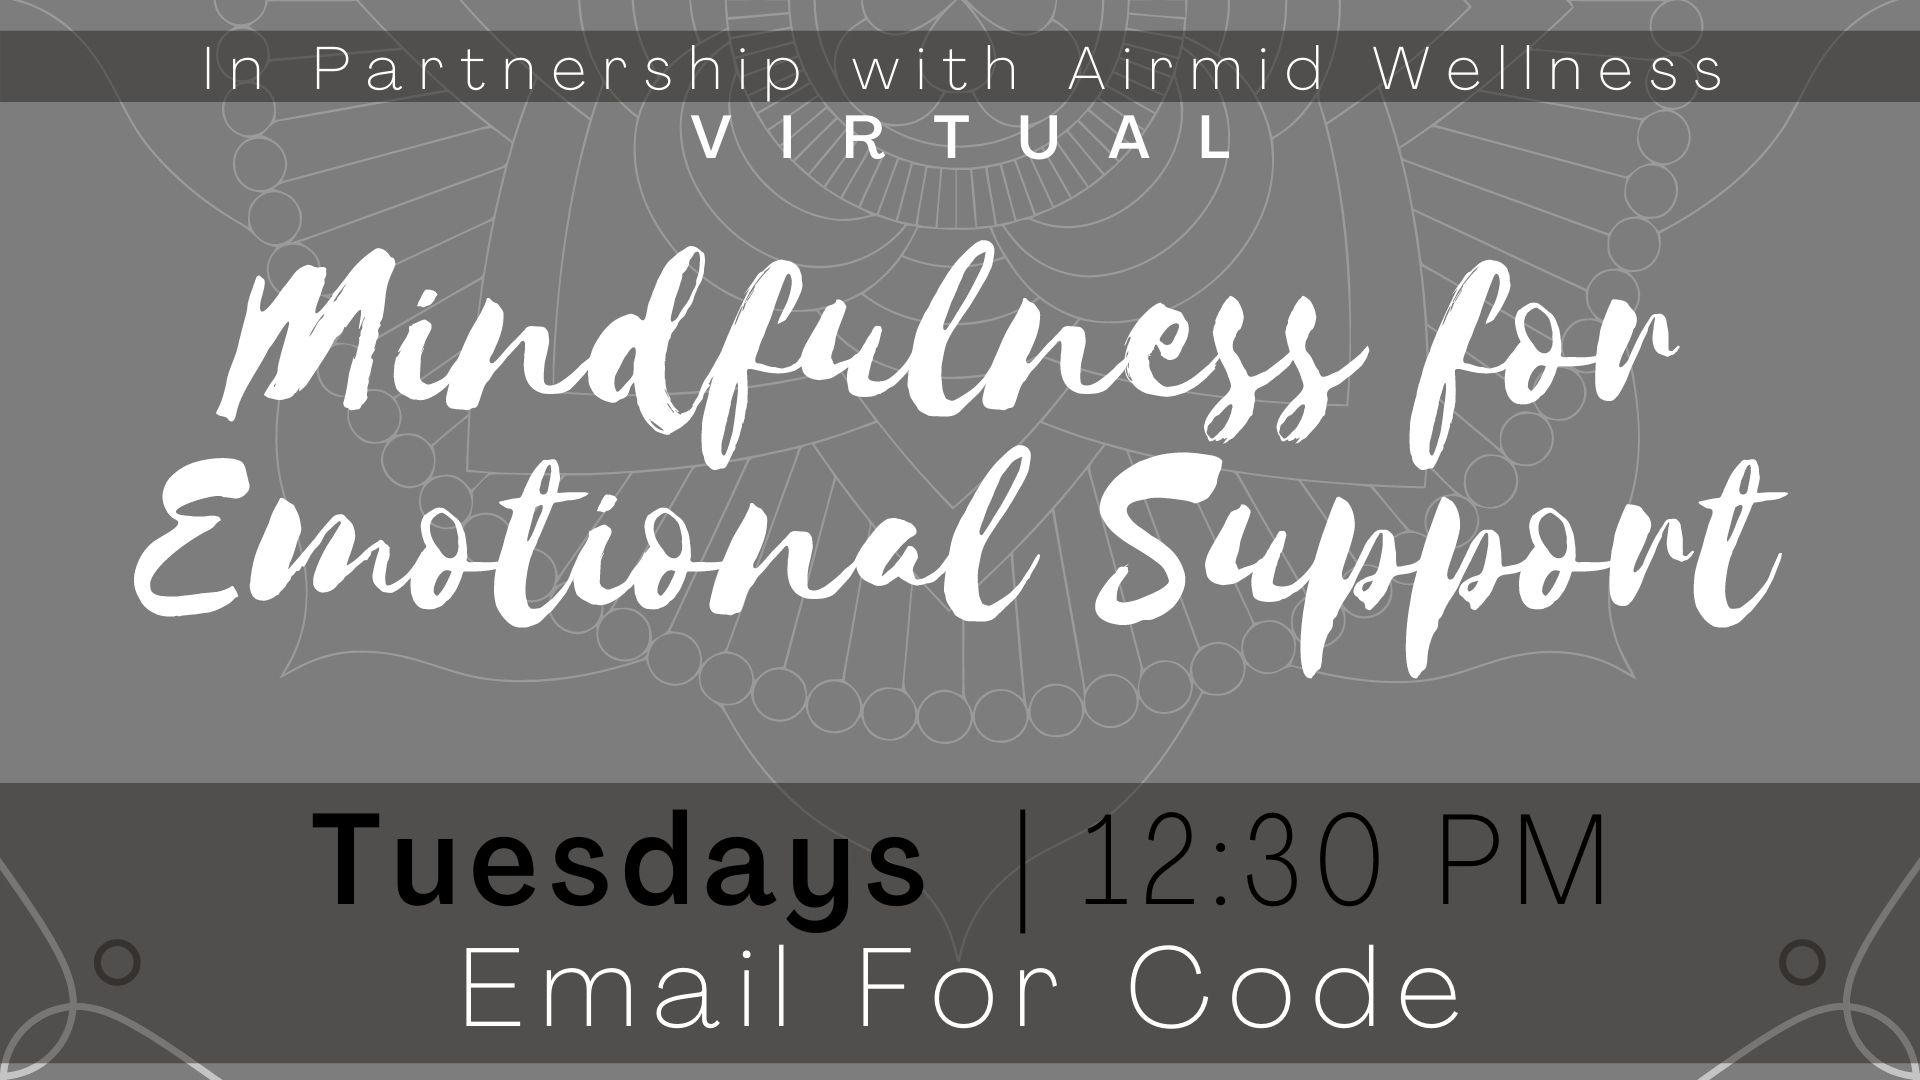 Mindfulness for Stress Relief and Emotional Support